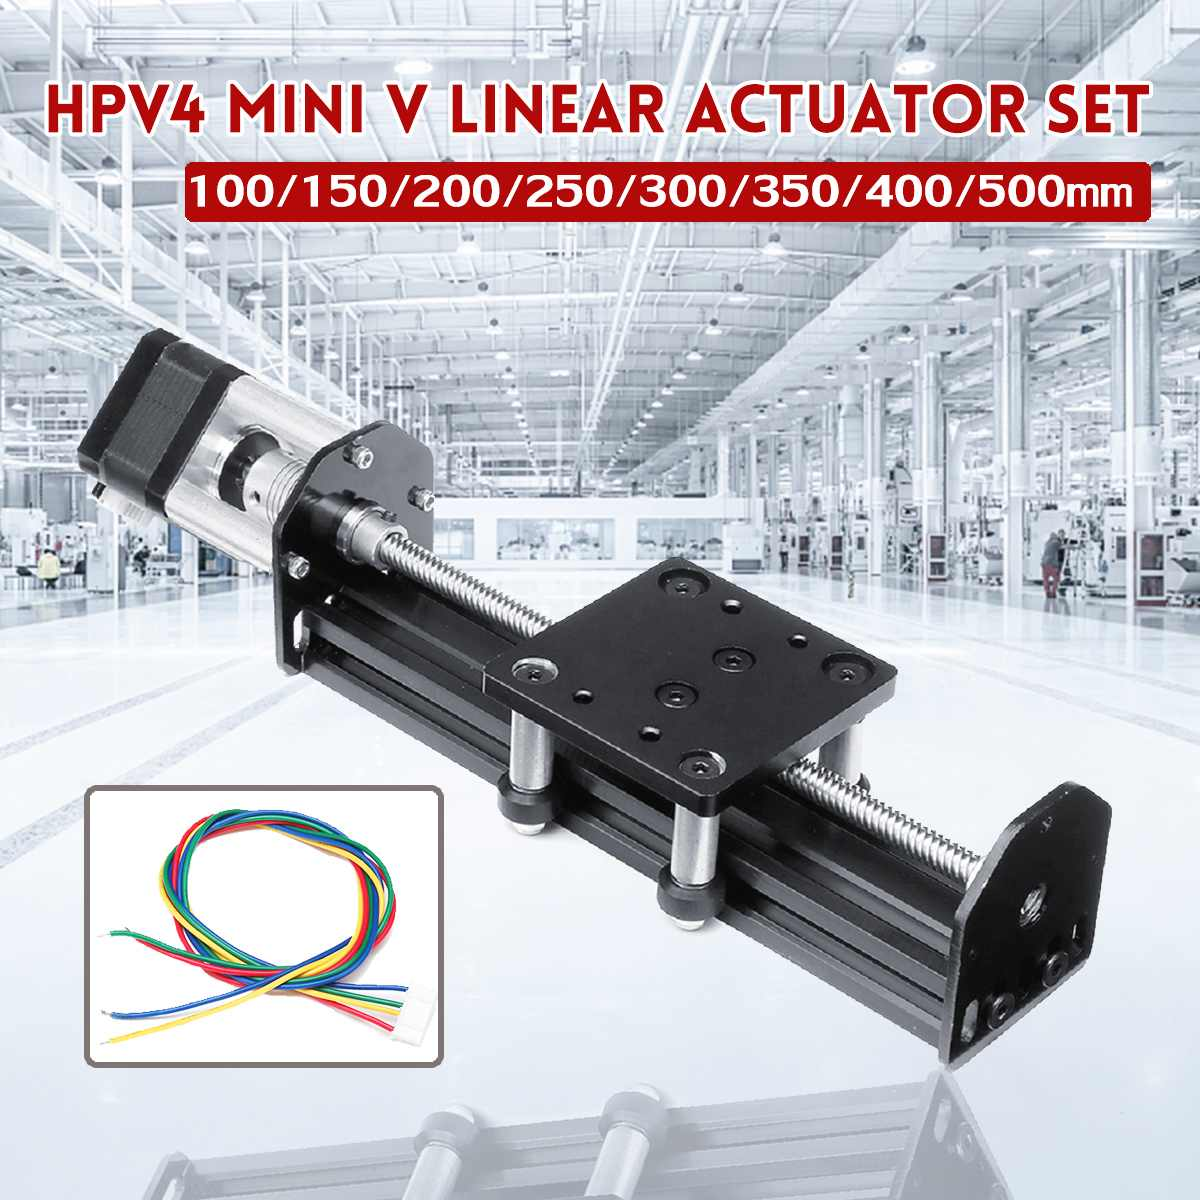 HPV4 Linear Guide Set Open builds Mini V Linear Actuator 100-500mm Linear Module with 17HS3401S Stepper MotorHPV4 Linear Guide Set Open builds Mini V Linear Actuator 100-500mm Linear Module with 17HS3401S Stepper Motor